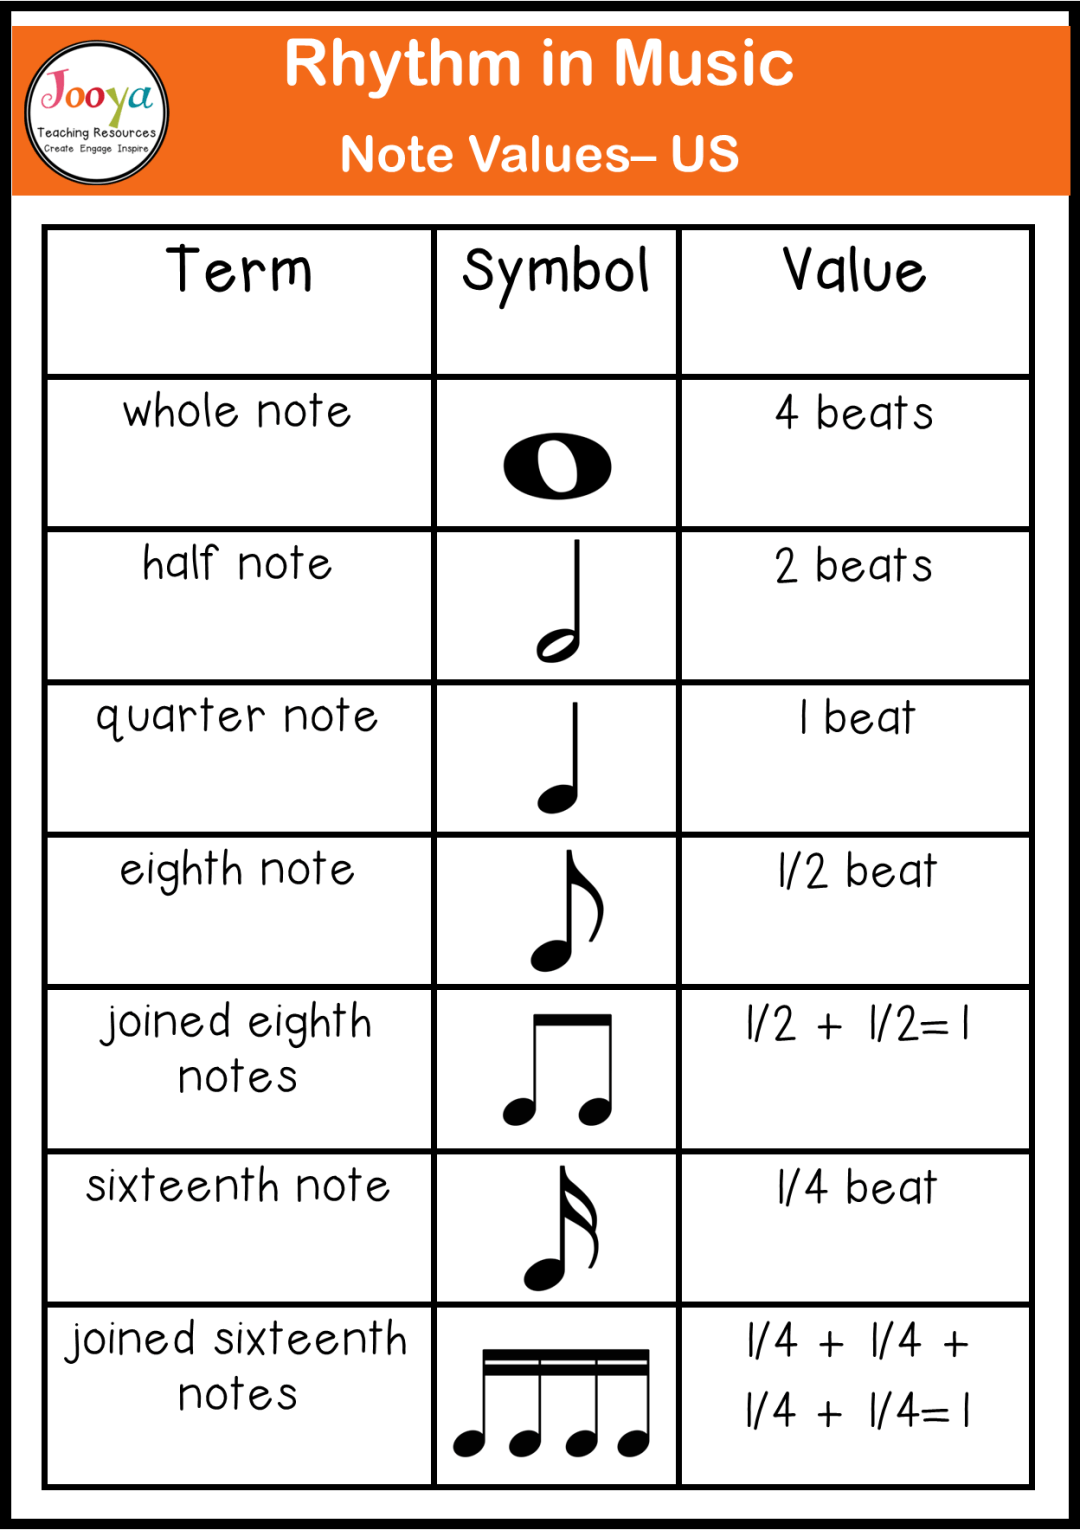 rhythm-in-music-note-values-chart-US-note-names